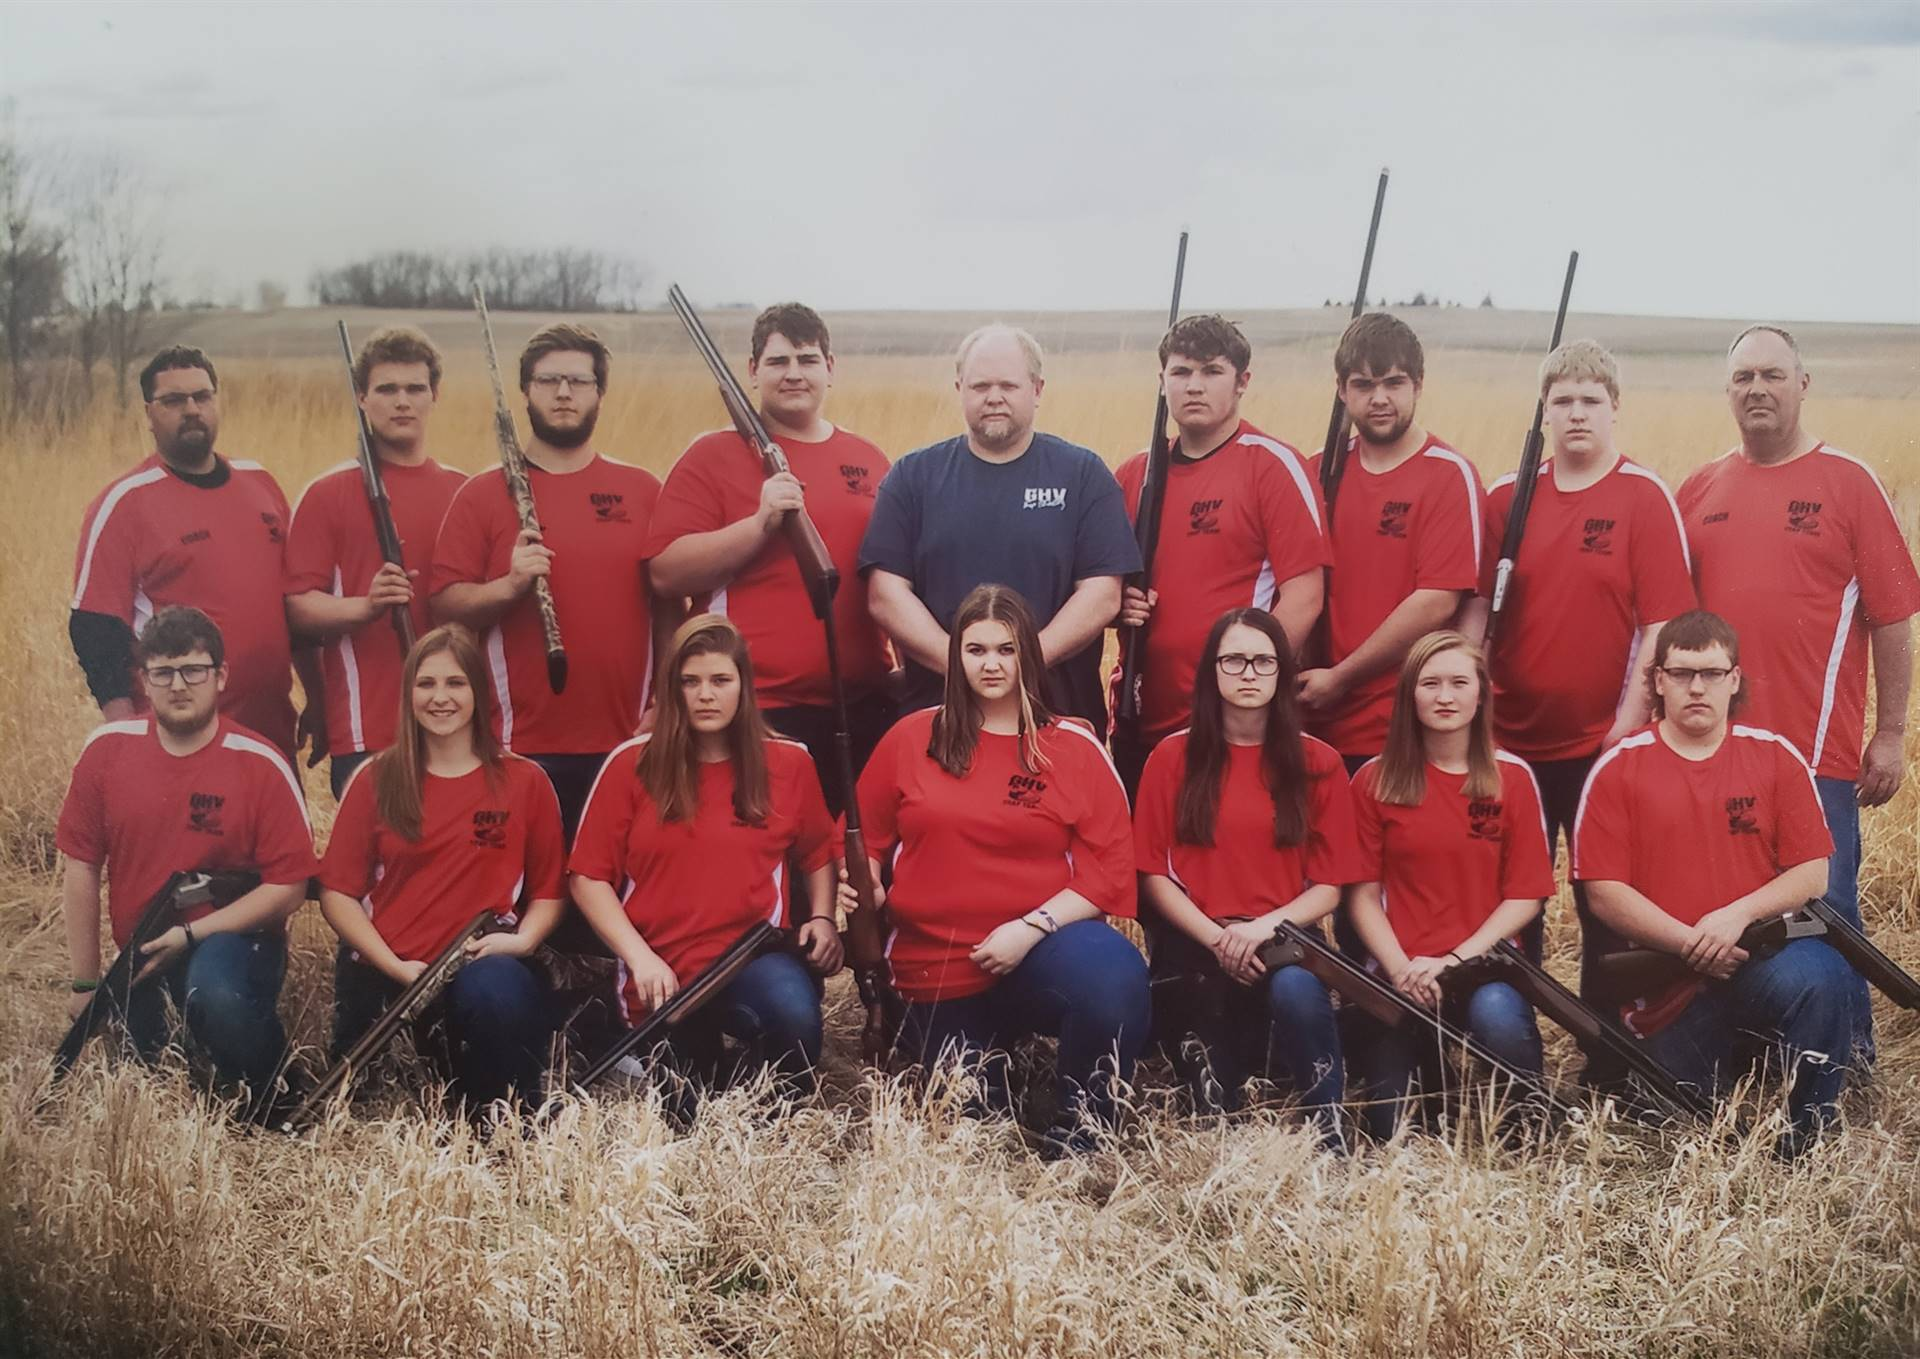 Trapshooting high school team posing for picture in a field